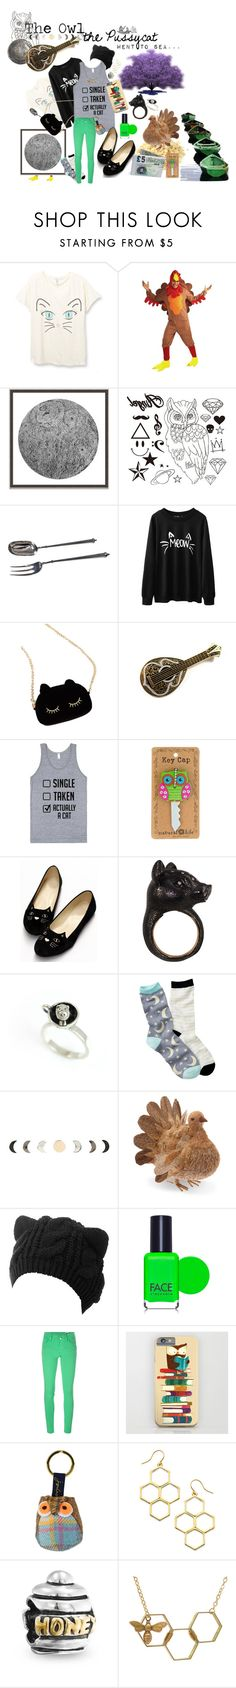 """The Owl & the Pussycat"" by acrazyperson on Polyvore featuring mode, Wendover Art Group, WithChic, Pussycat, Nisan, Bug, Free Press, FACE Stockholm, M Missoni et Joules"